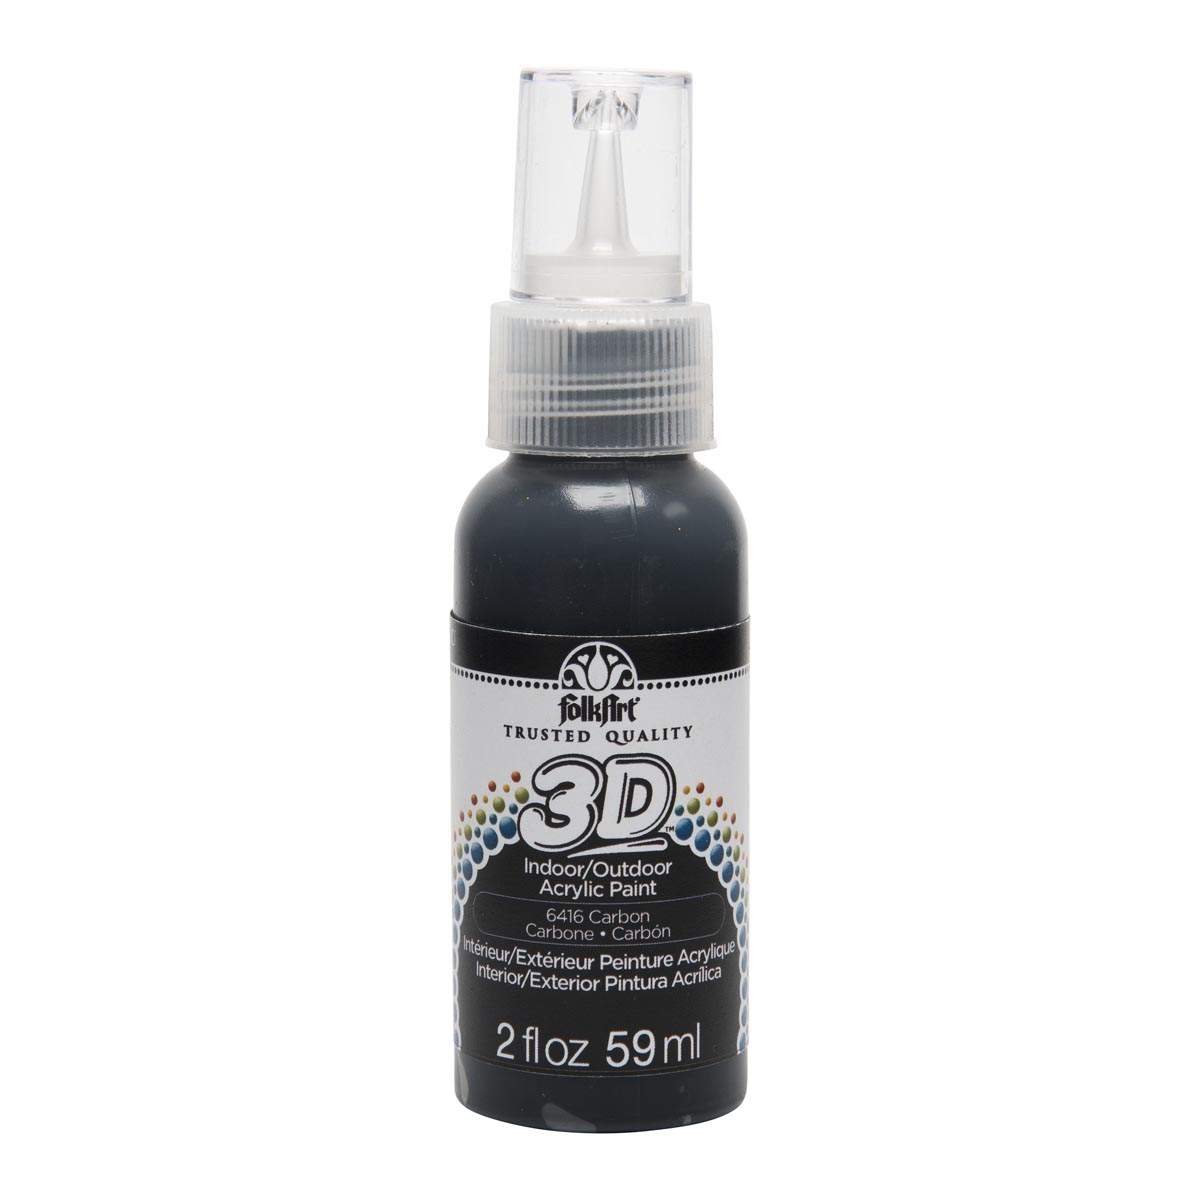 FolkArt ® 3D™ Acrylic Paint - Carbon, 2 oz.